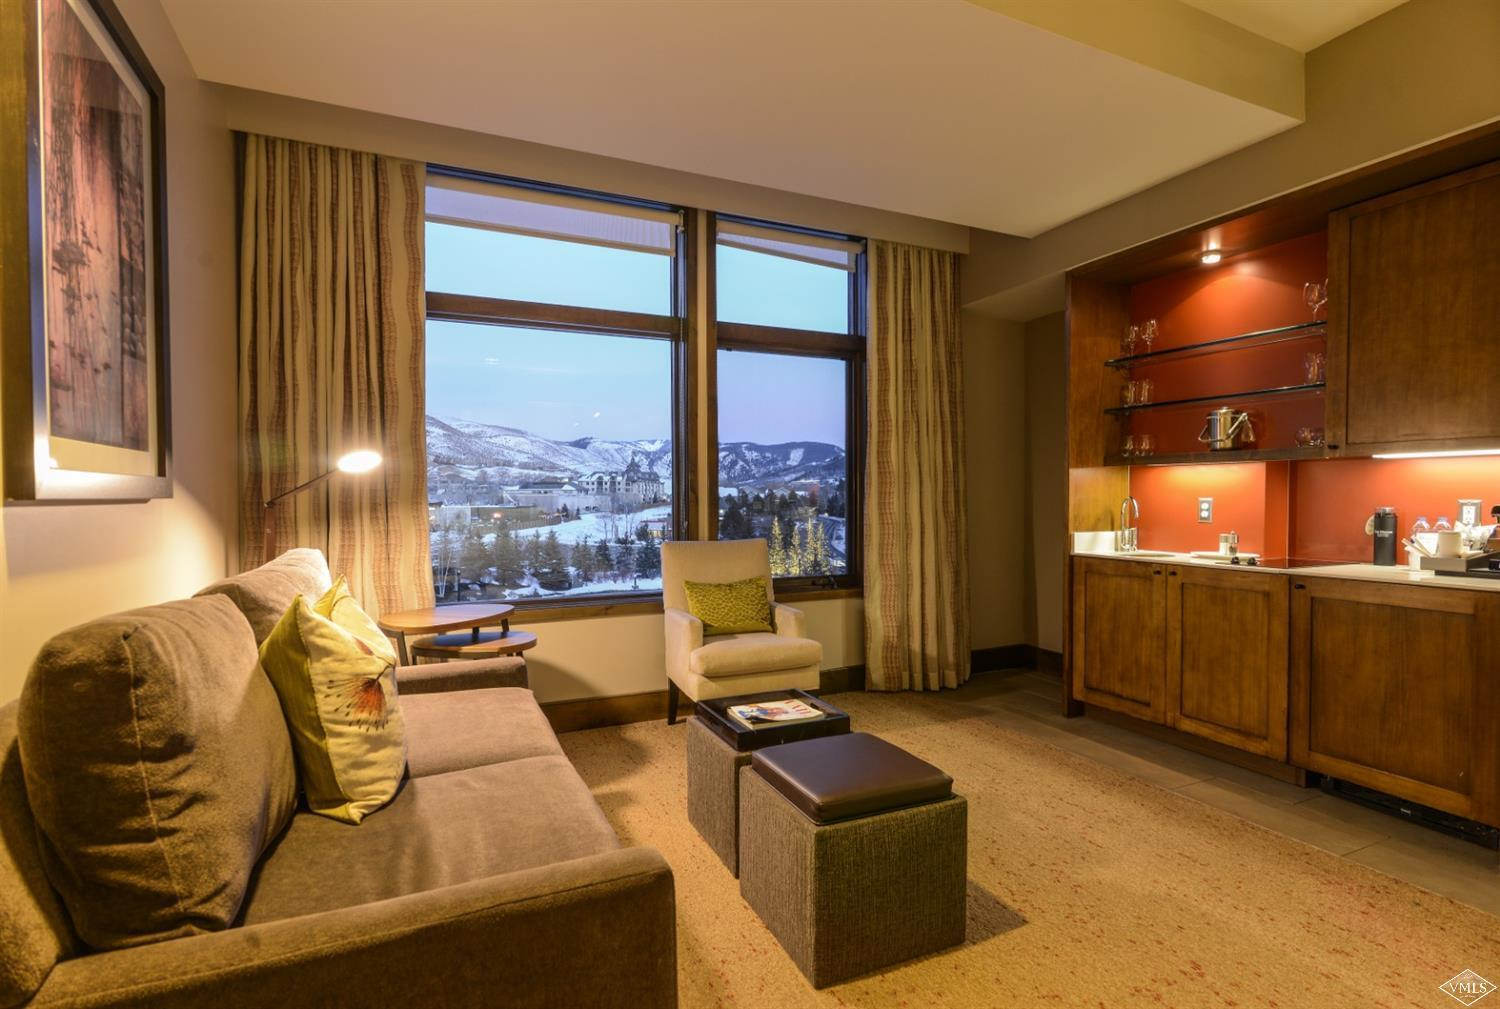 One of the larger East-facing studios in the Westin Riverfront Resort & Spa. Take the gondola directly to the slopes! Low maintenance ownership-everything included in HOA dues (except taxes)! Dues also include use of fitness center, pool, hot tubs, luxury spa, and underground parking.